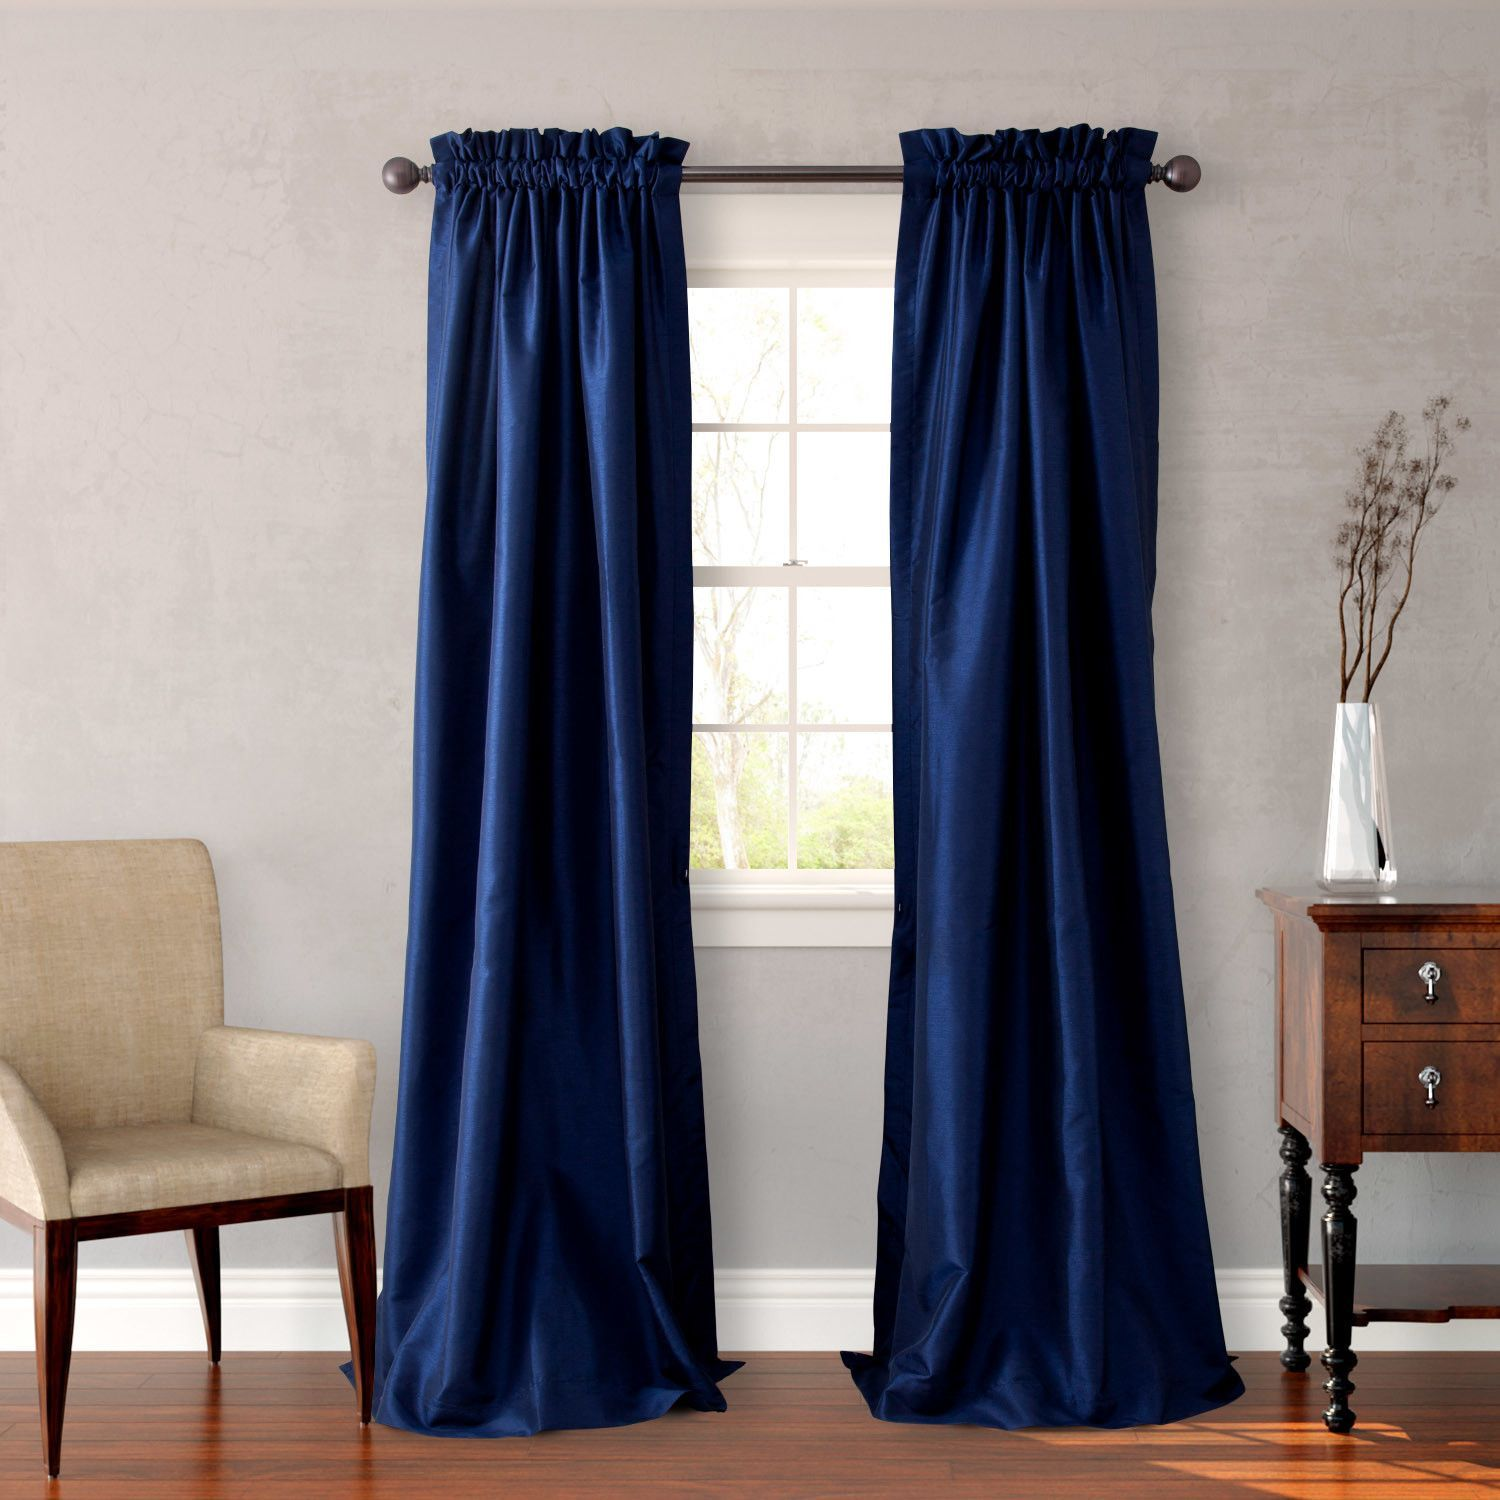 Faux silk curtain panels in navy products pinterest faux silk